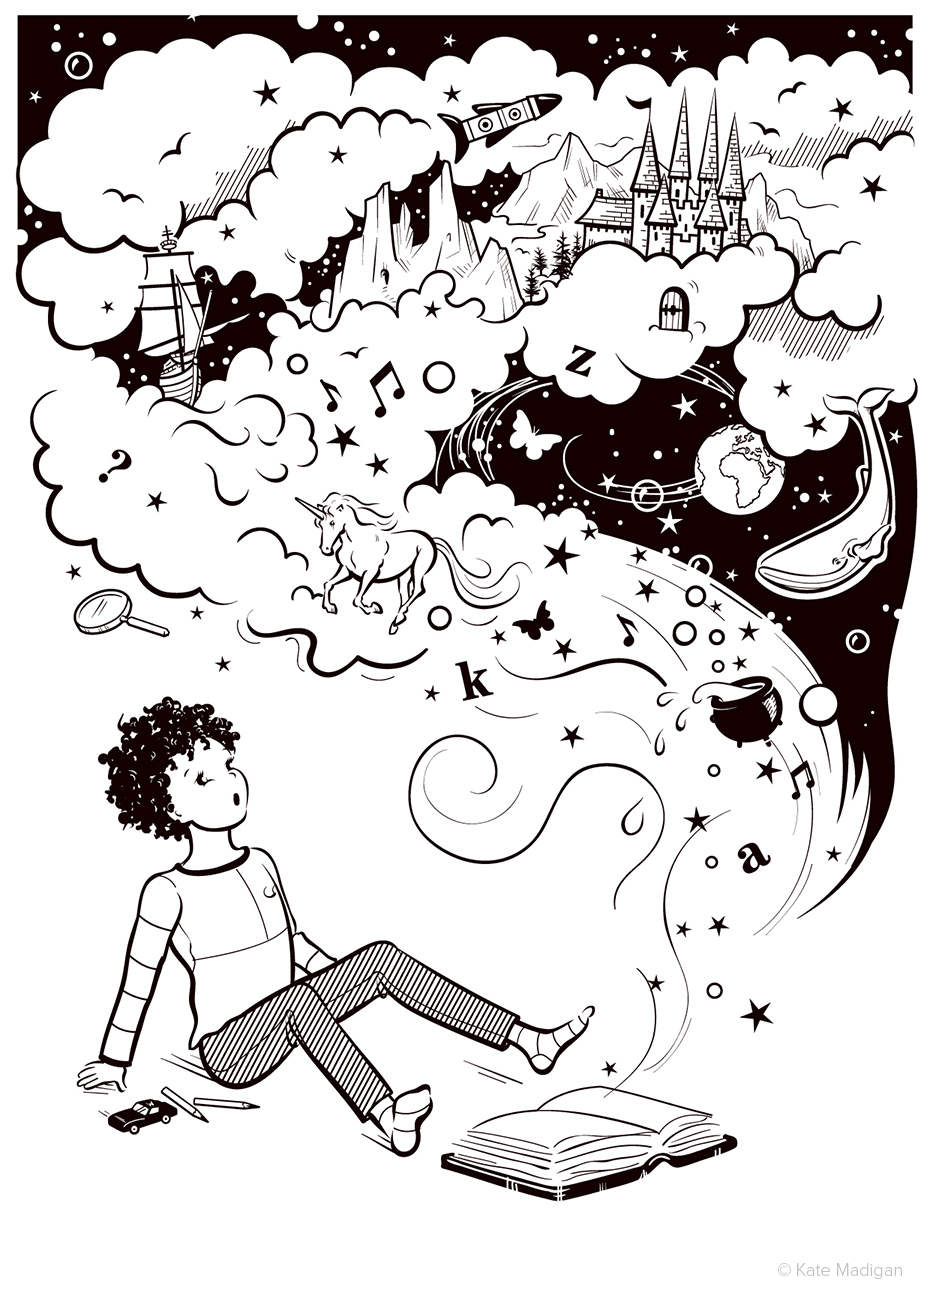 Line drawing depicting a small girl watching in astonishment as a magical world representing different genres of literature bursts out of an open book: includes stars, clouds, unicorn, butterfly, whale, space, planet, bubbles, cauldron, musical notes, letters of the alphabet, magnifying glass, sailing ship, sailboat, tall ship, birds, mountains, fairytale castle, spaceship, rocket, caves, toy car, crayons. Black and white, monochrome. Detective fiction, non-fiction, animal stories, magic, science fiction, sci-fi, adventure, historical novels, action, mystery, reference, learning. Copyright Kate Madigan.